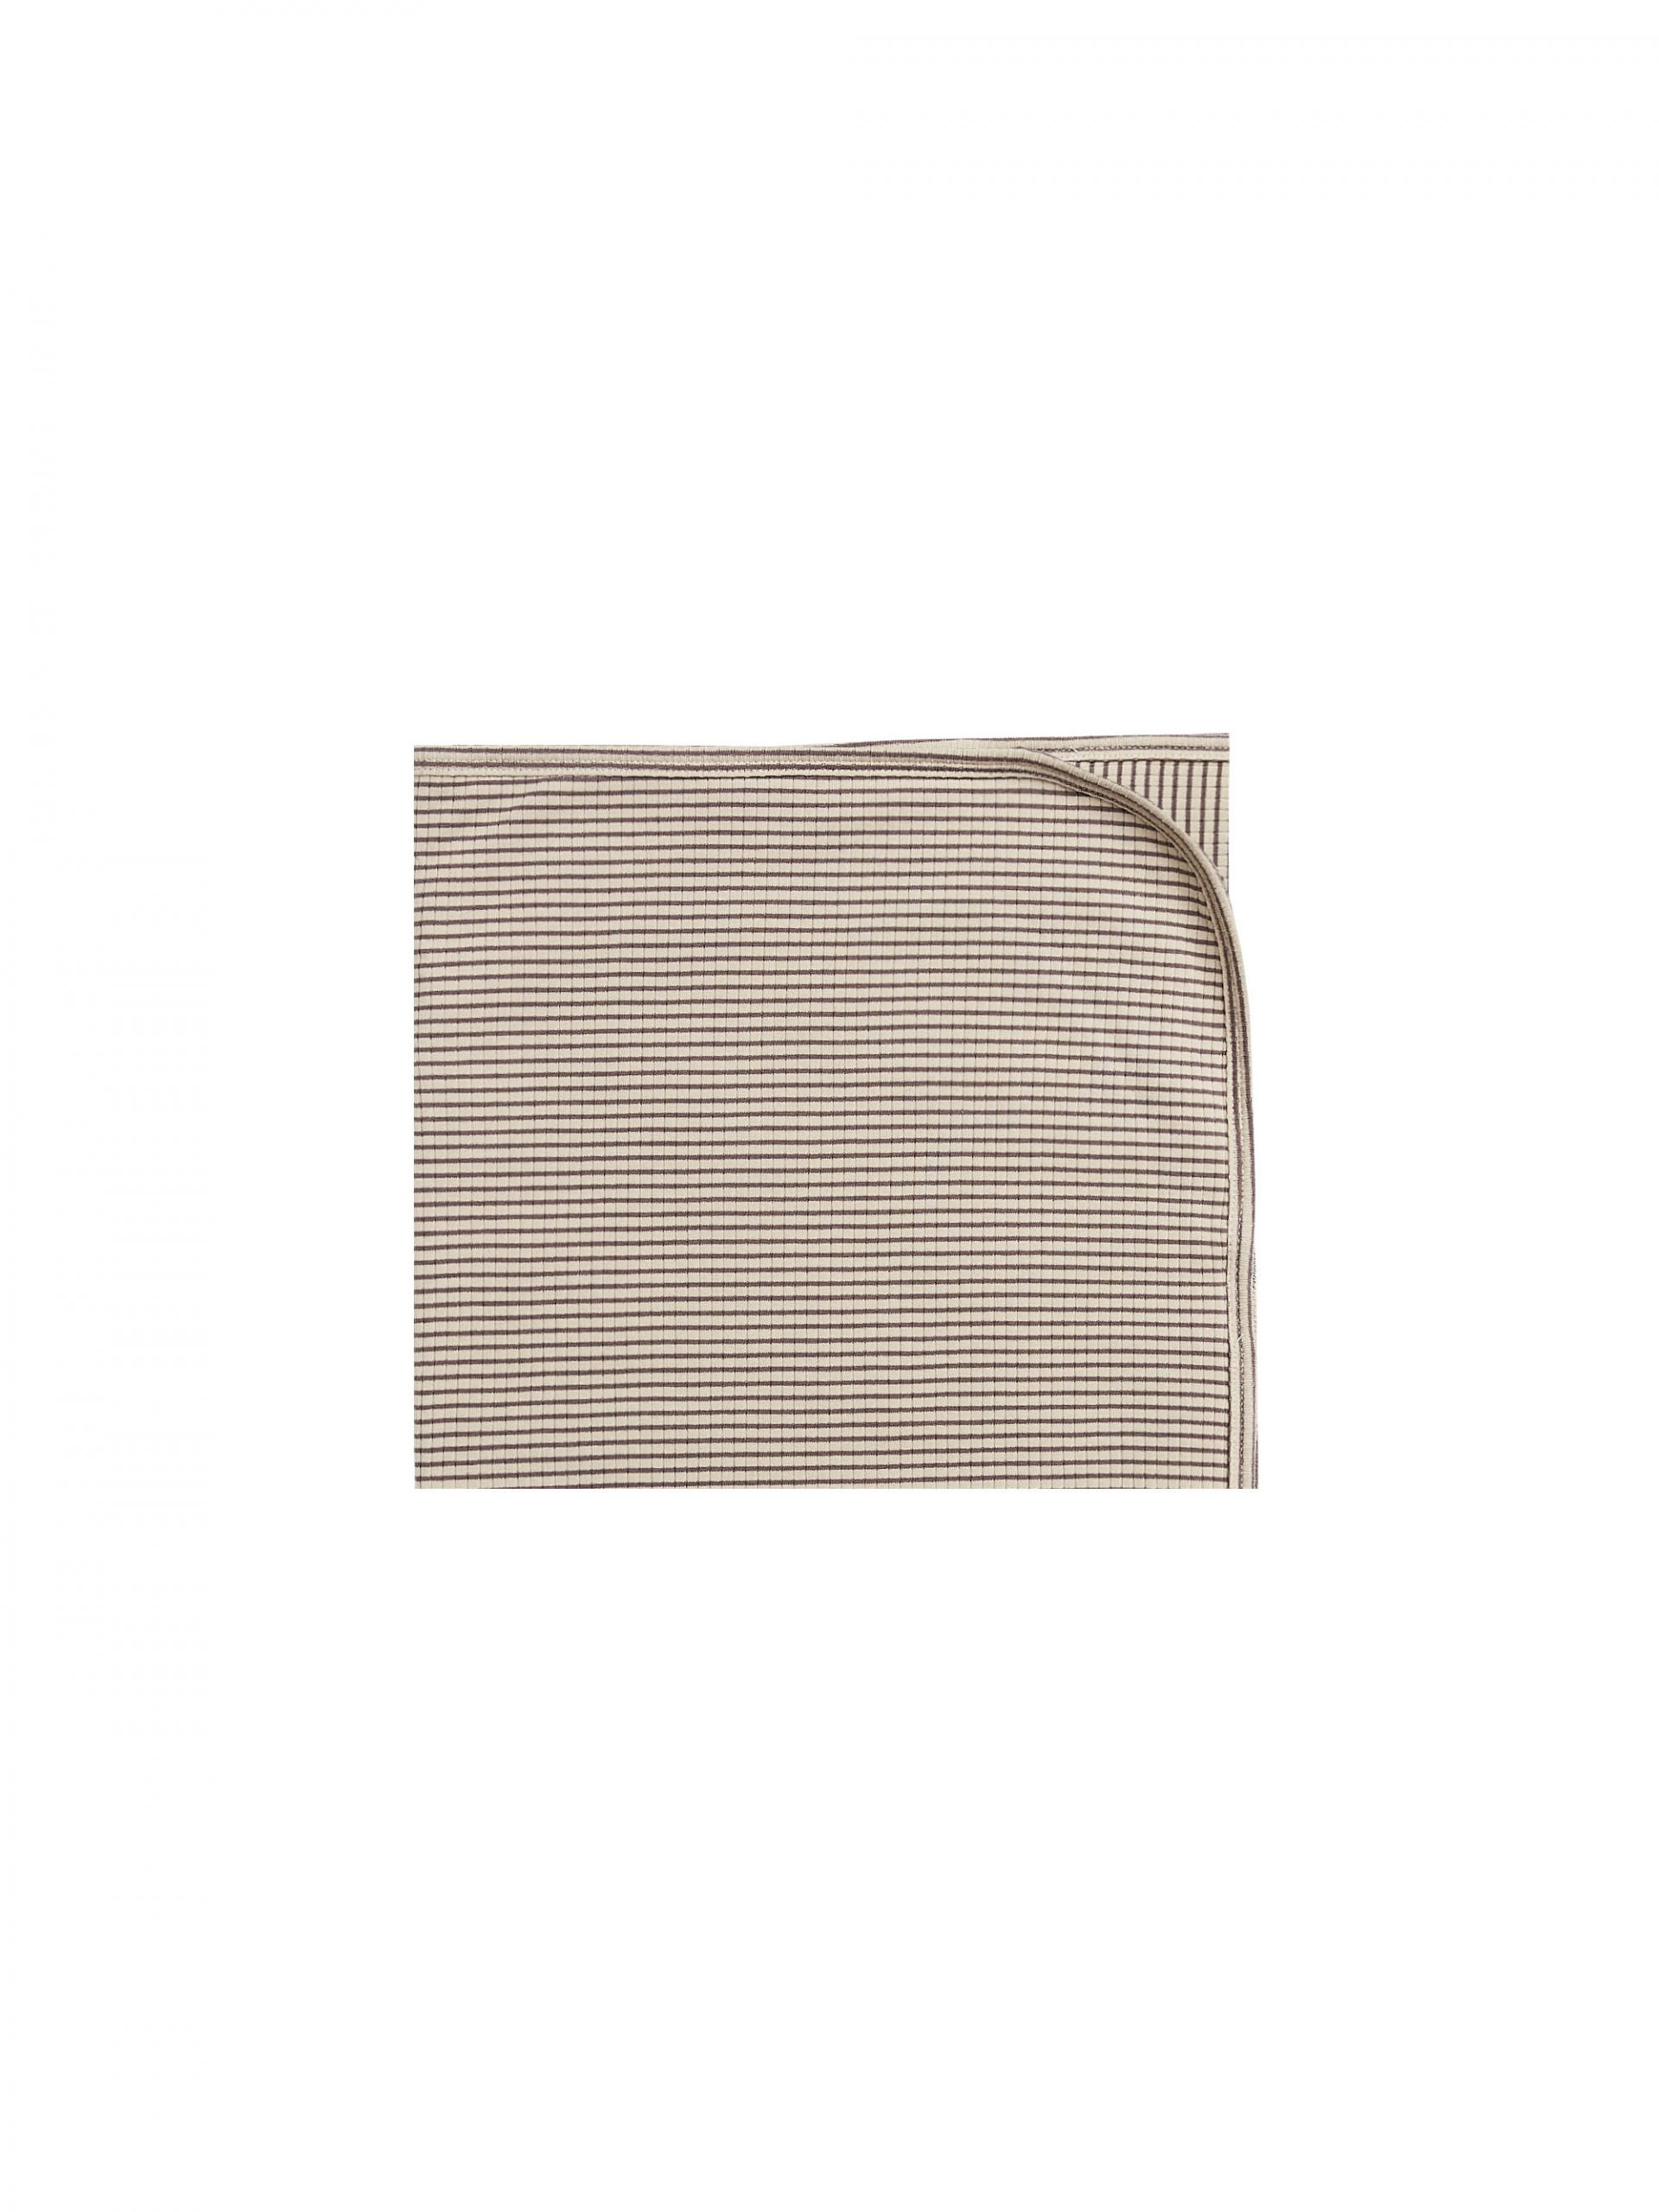 Quincy Mae Ribbed Baby Blanket (charcoal stripe)